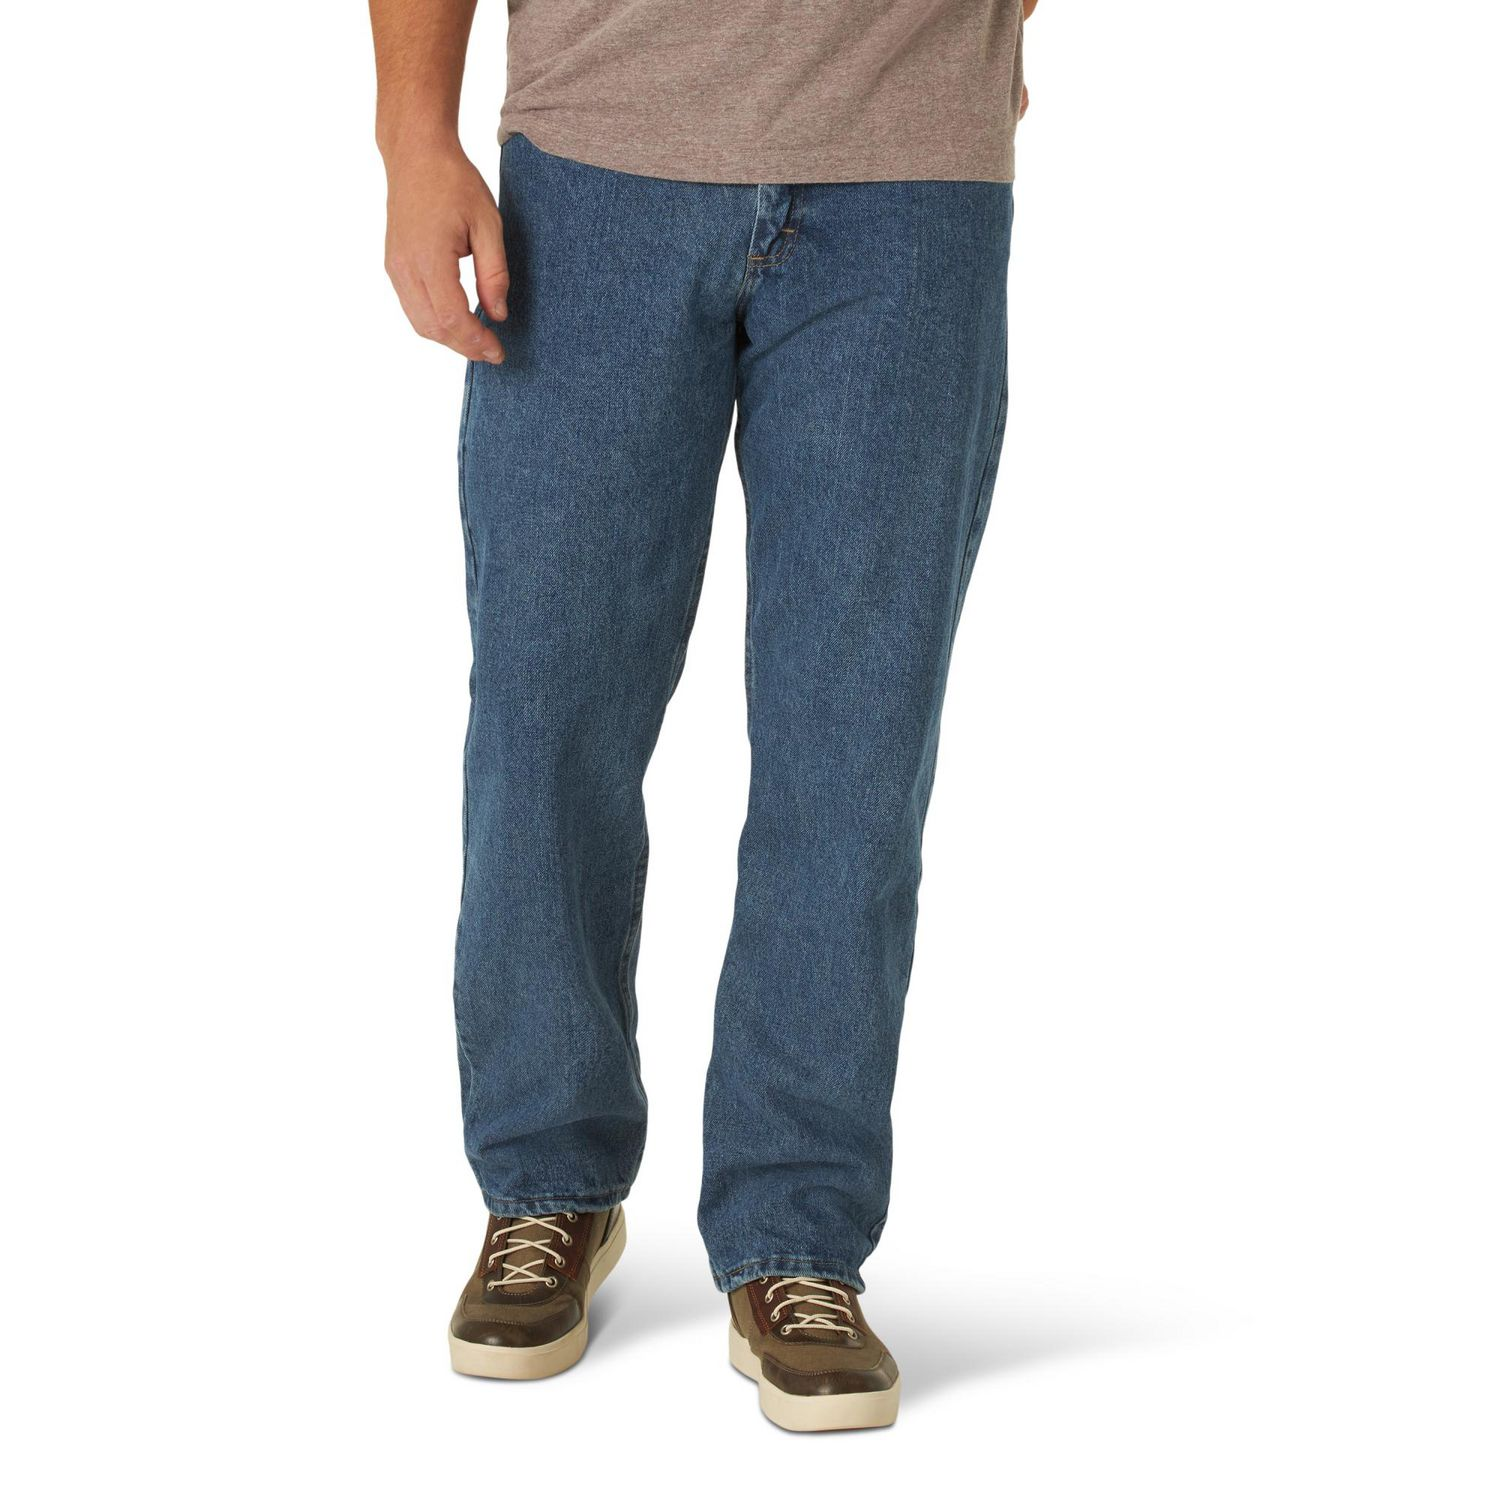 a9990784 Wrangler HERO Relaxed Fit Jeans - image 1 of 3 zoomed image